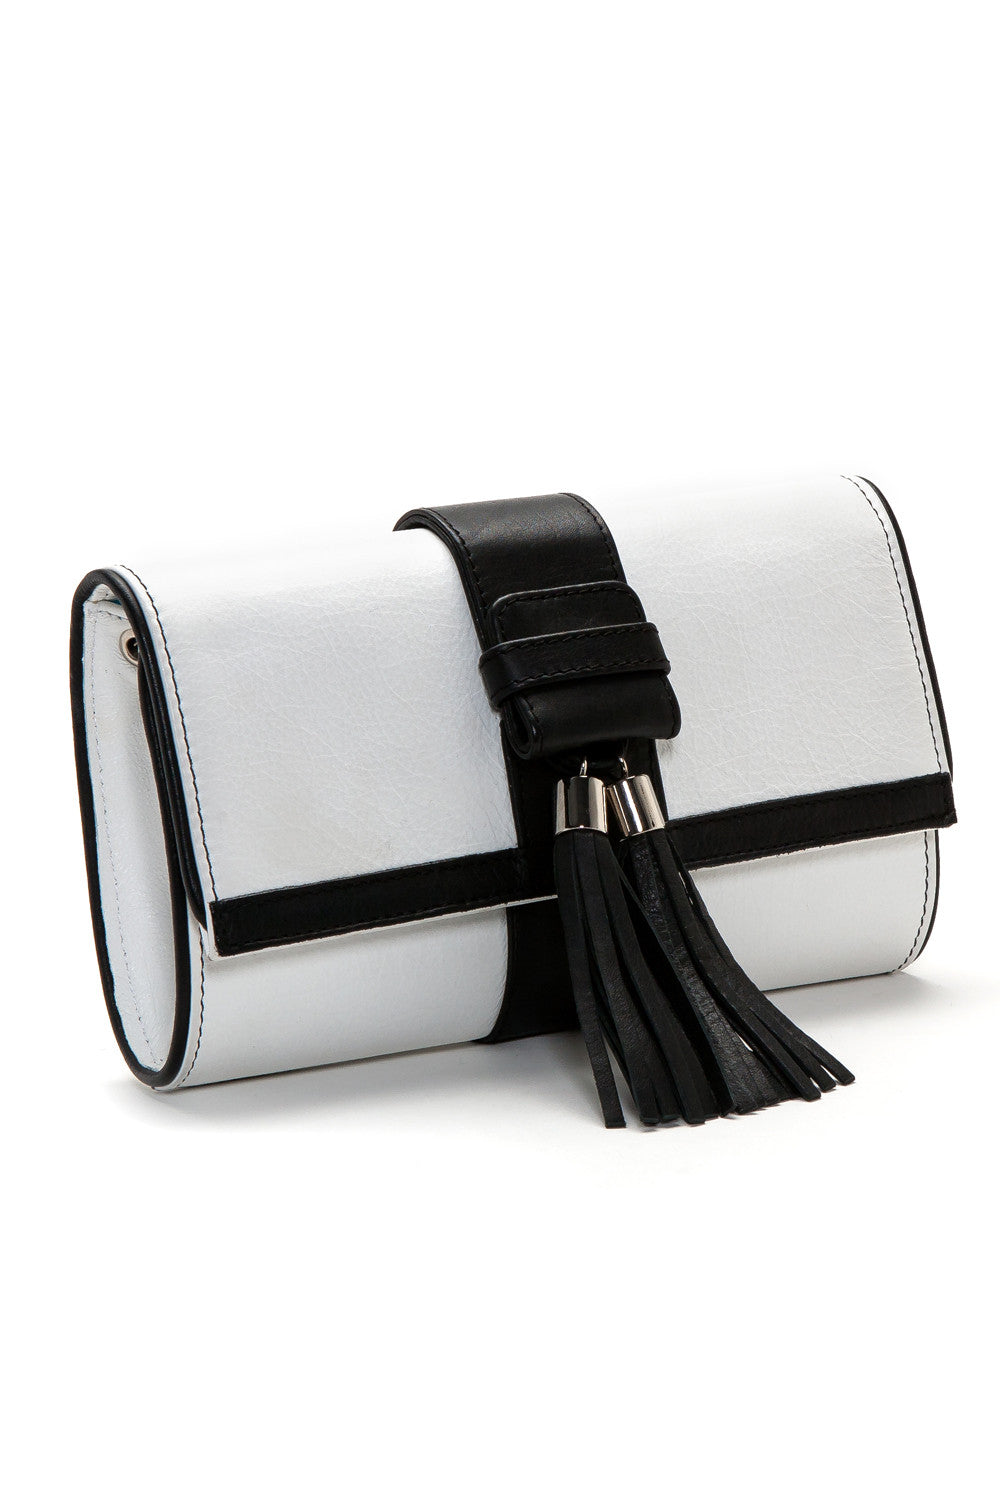 Black and White Tasseled 'Lauren' Small Shoulder Bag | Mel Boteri | Side View